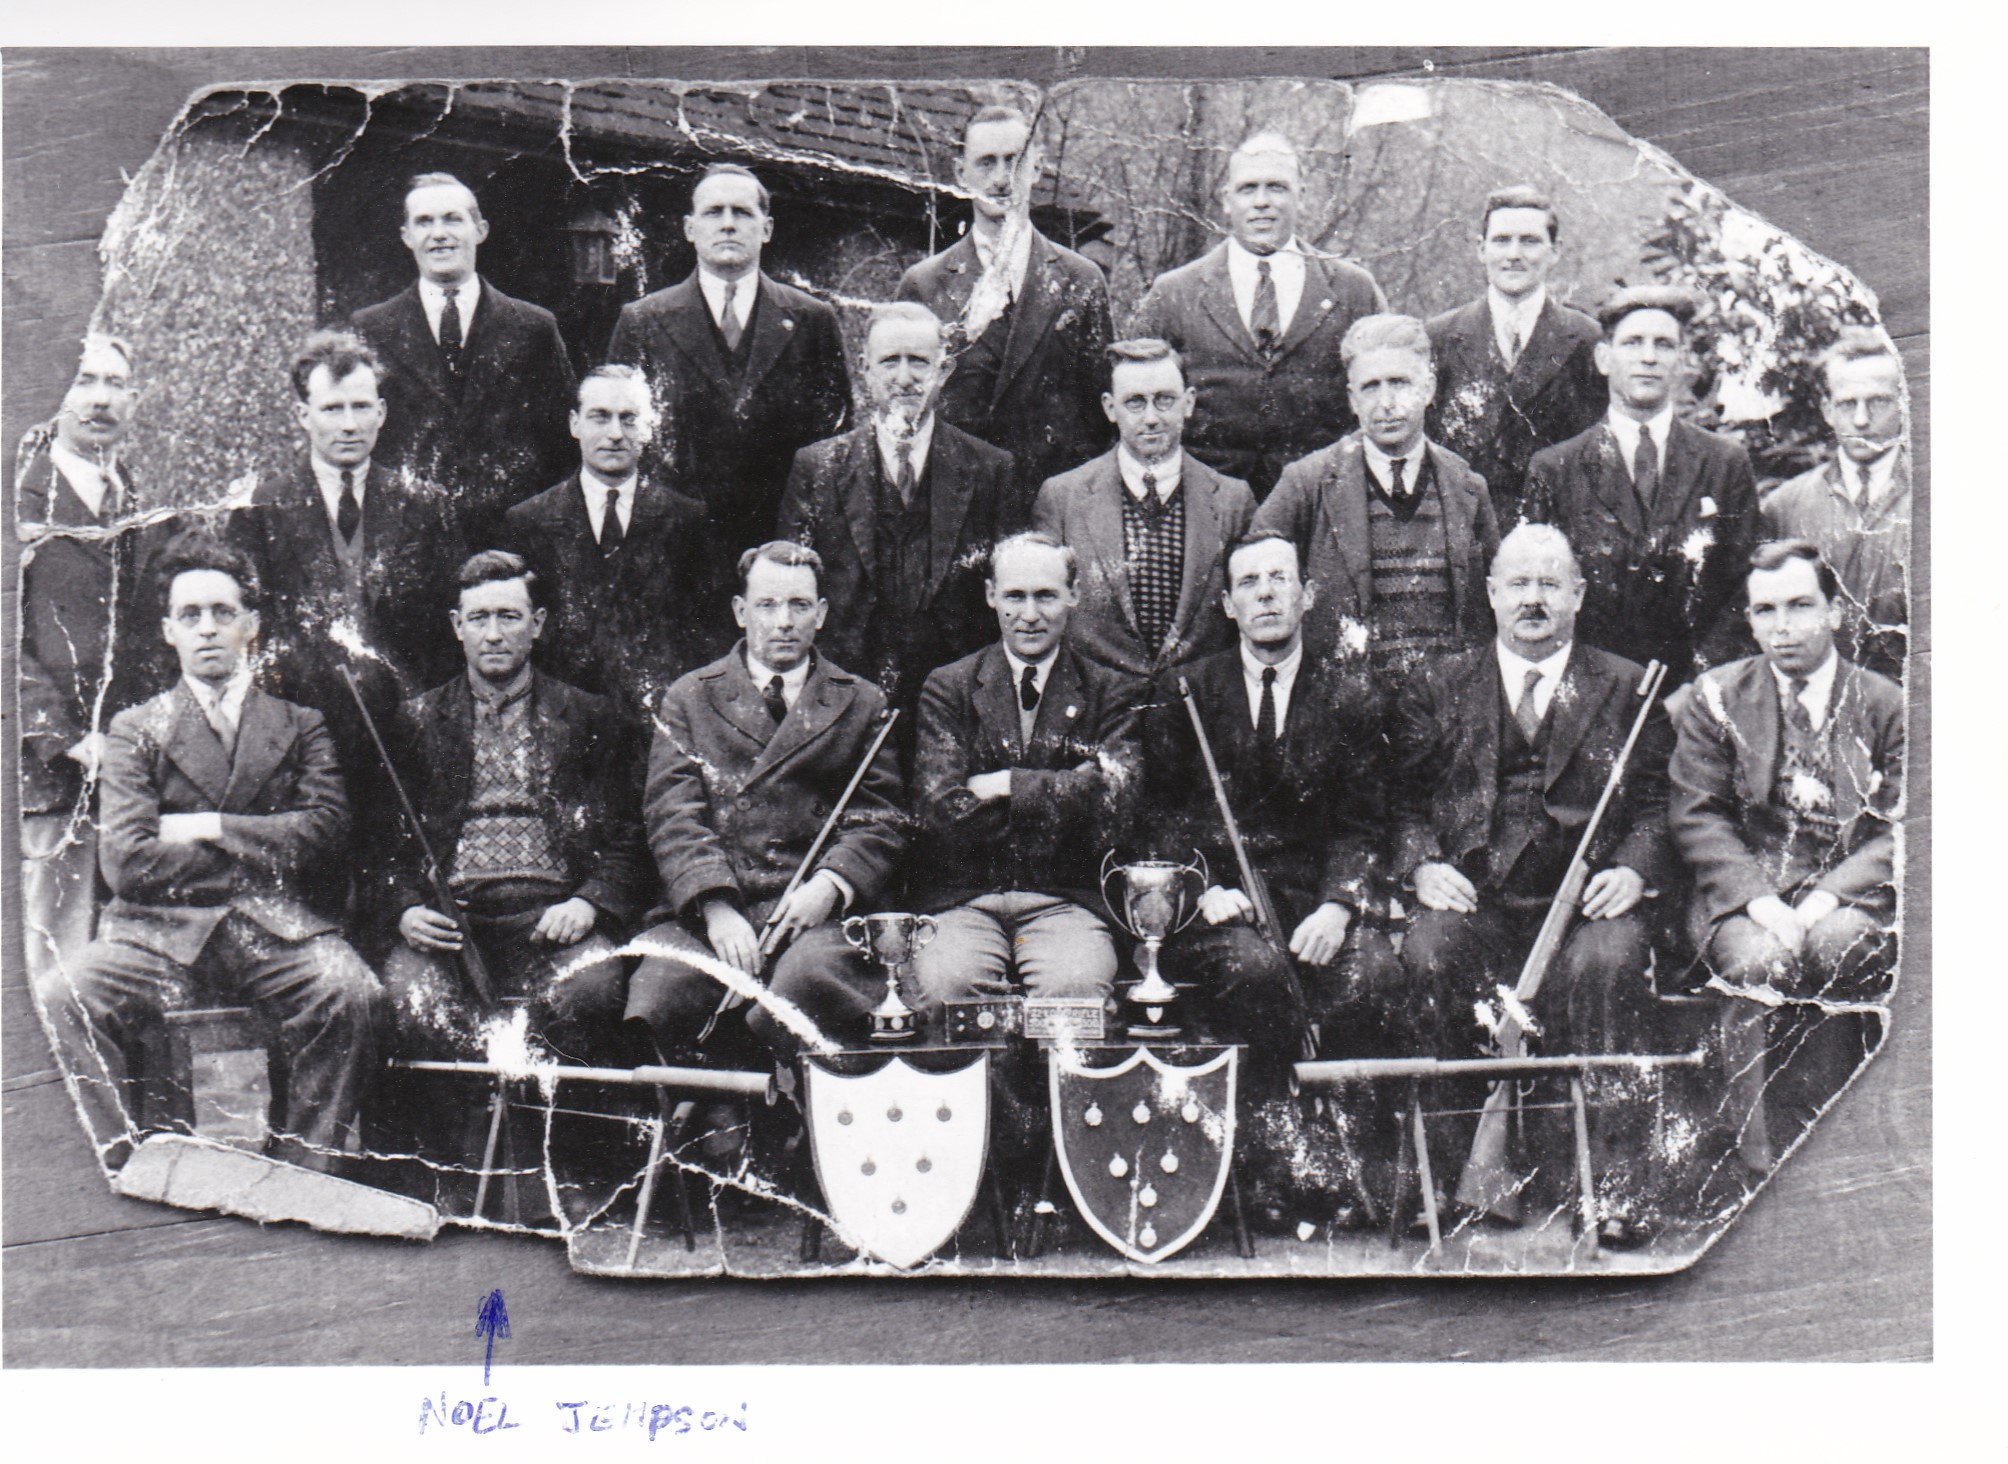 Powder Mills Rifle Club, winners of the KCRA Kilara Cup: the Tonbridge and District Miniature Cup; and the Robinson Challenge Cup.  Noel Jempson, publican of The Plough, is bottom row, second from left - see arrow.   Alfred Batchelor is top row fourth from left, when looking straight at the picture.